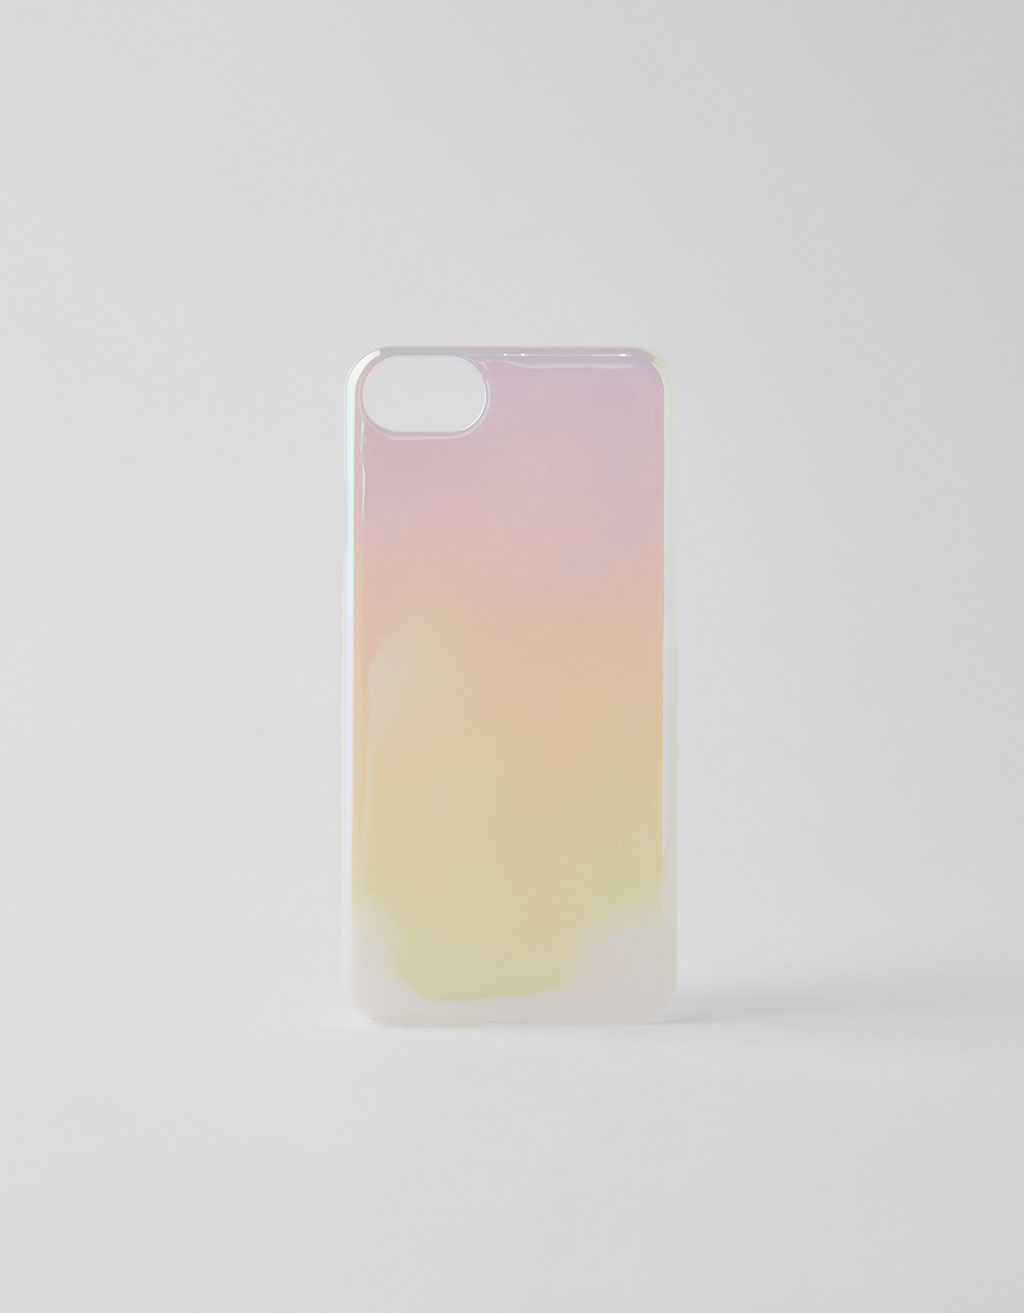 Carcassa iridescent iPhone 6/6s/7/8